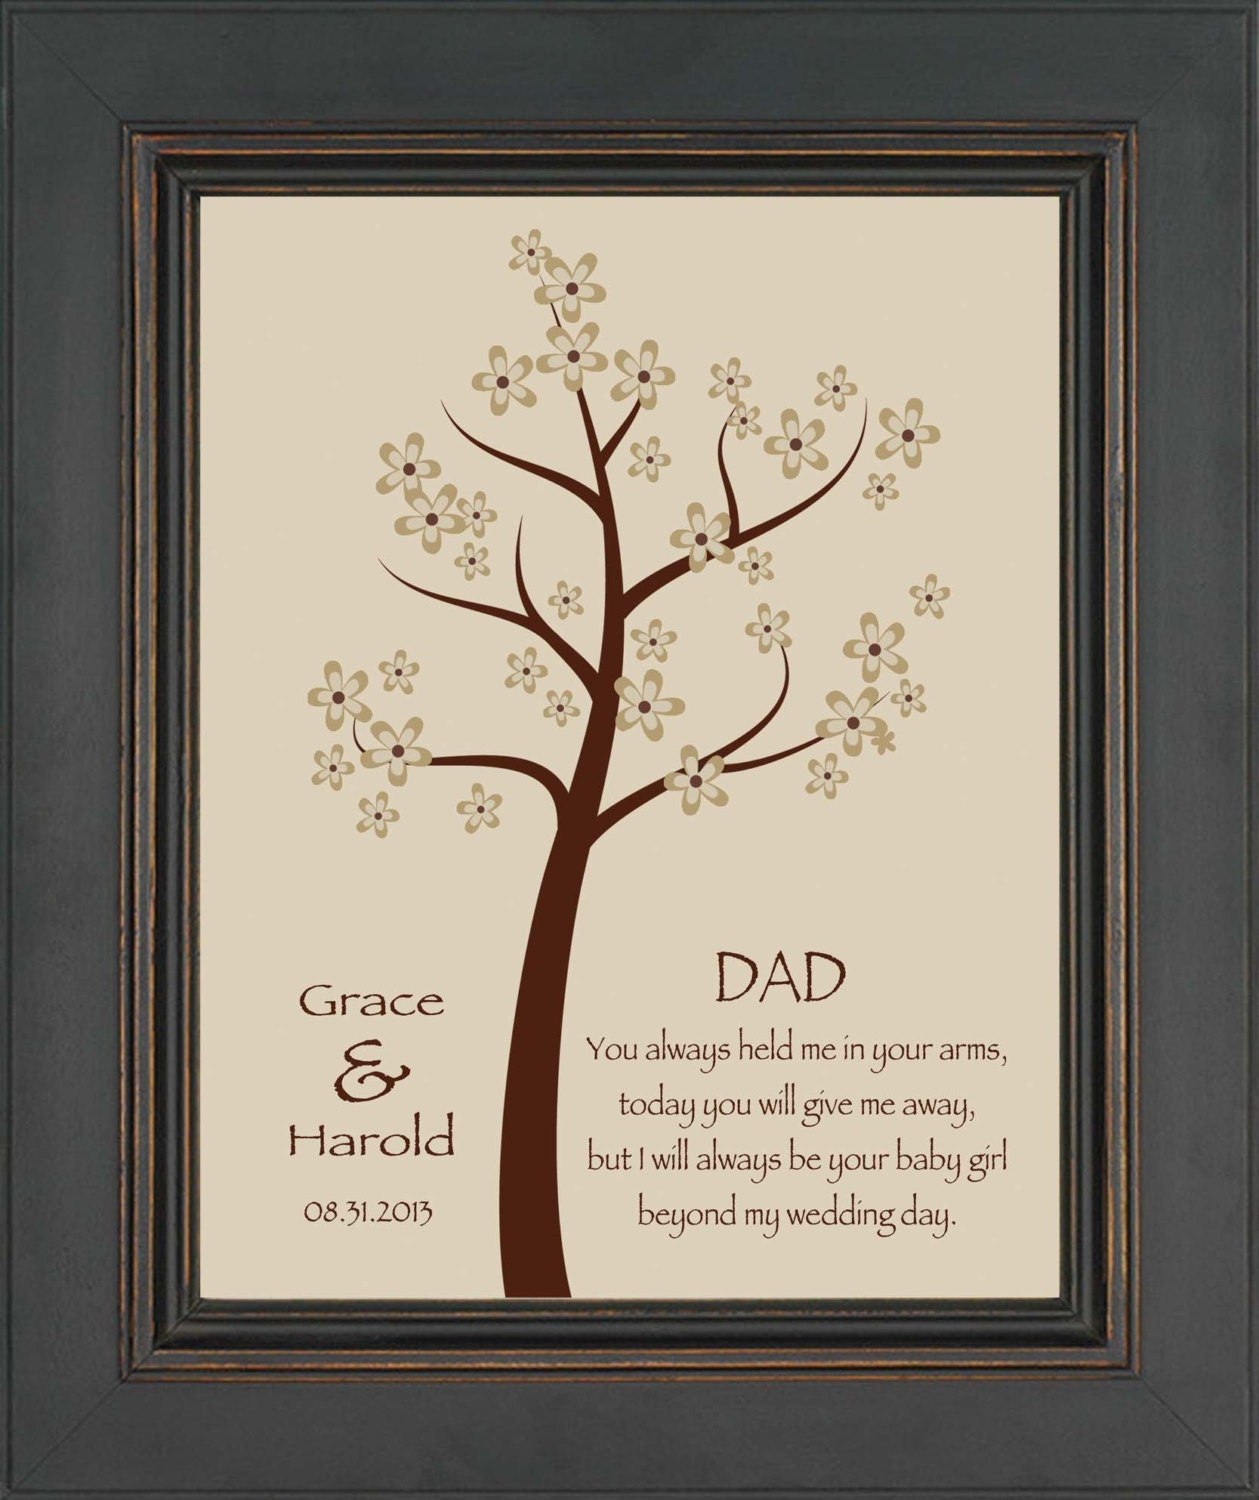 Wedding Gift To Daughter From Dad : Wedding Gift for DAD from Bride Thank you gift for DAD on